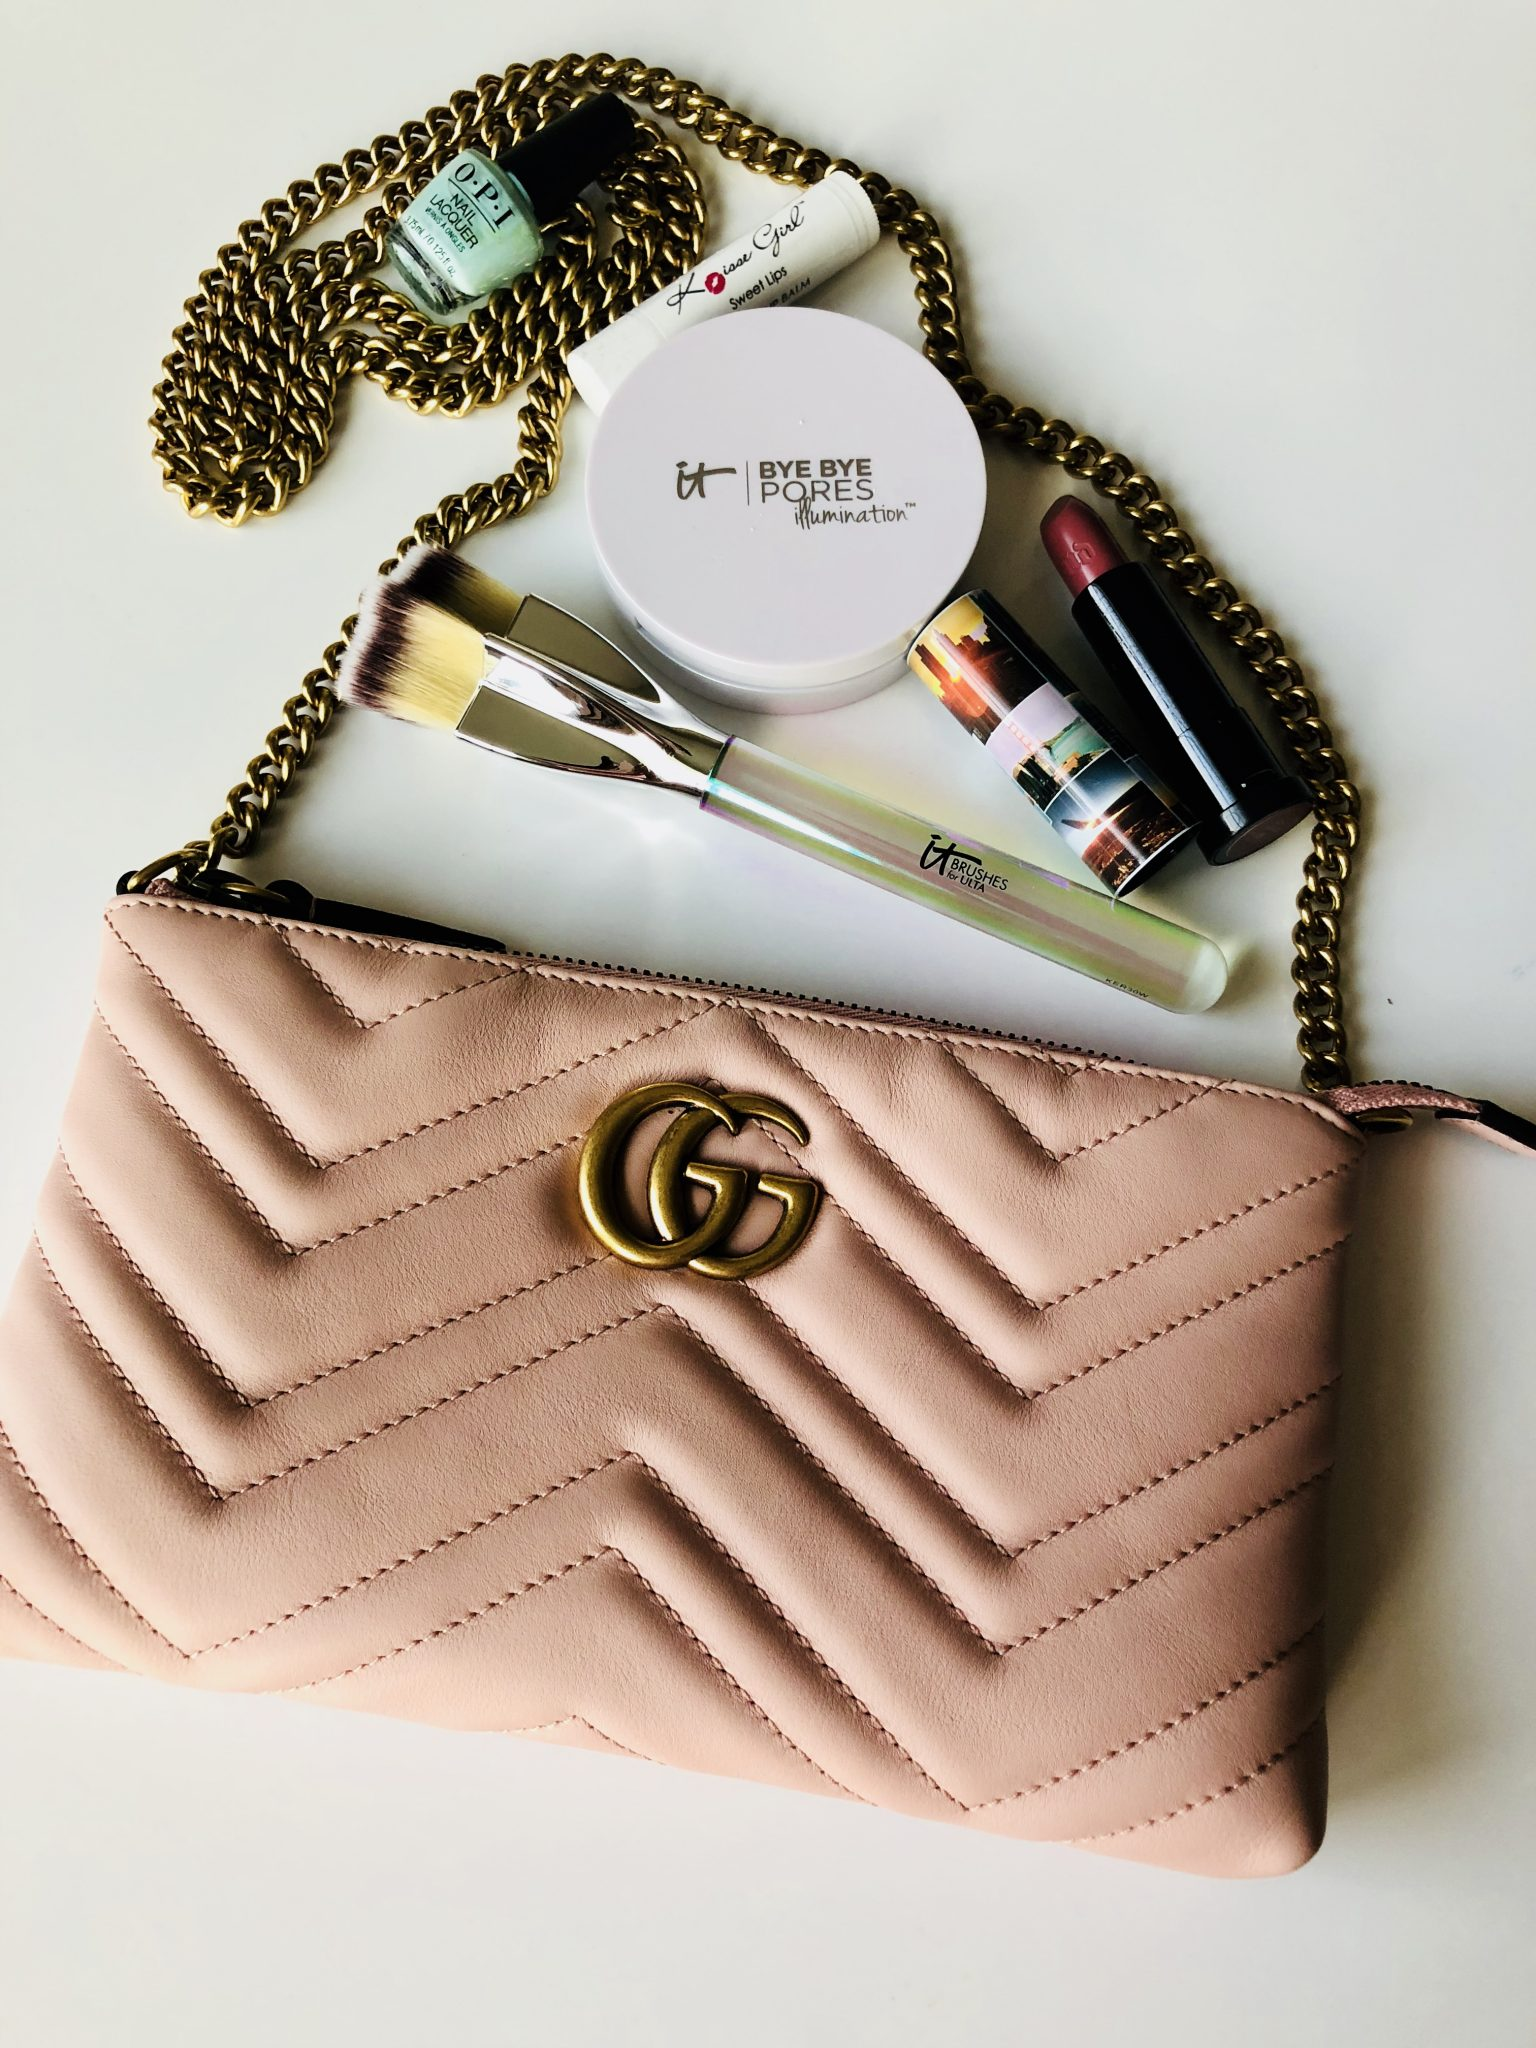 What's In My Bag: Gucci Marmont Mini Chain Bag